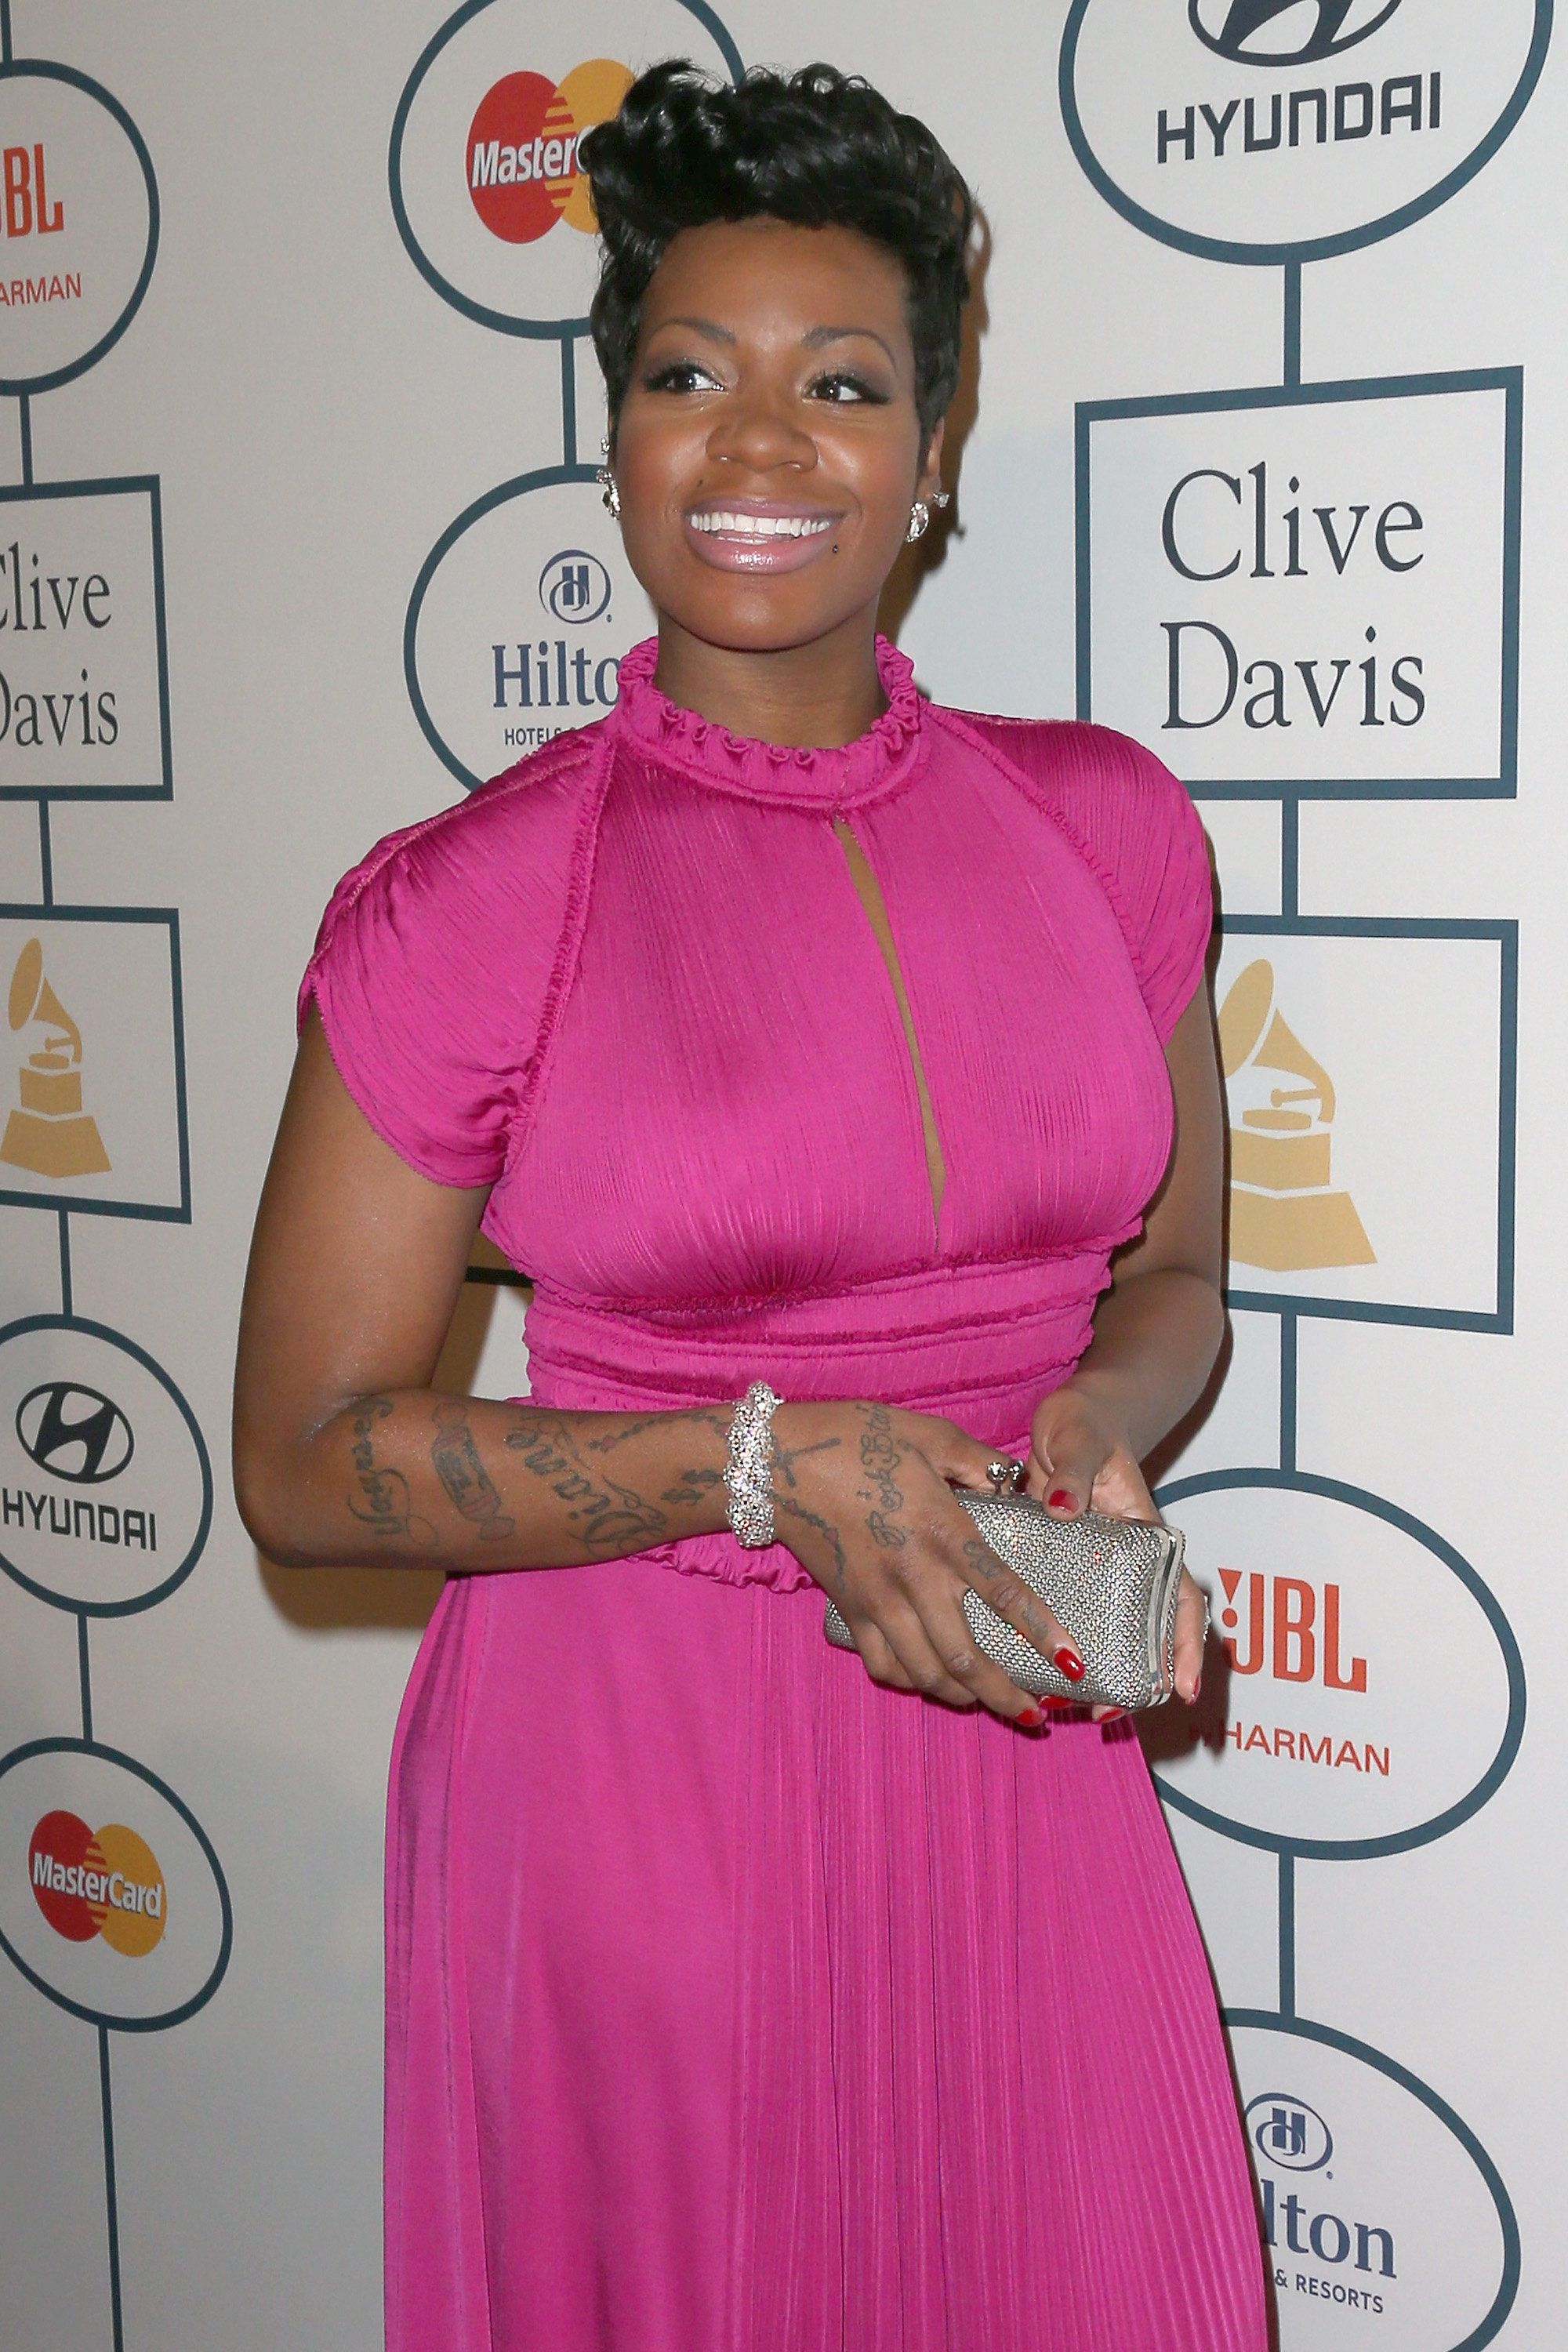 BEVERLY HILLS, CA - JANUARY 25:  Singer Fantasia Barrino attends the 56th annual GRAMMY Awards  Pre-GRAMMY Gala and Salute to Industry Icons honoring  Lucian Grainge at The Beverly Hilton on January 25, 2014 in Beverly Hills, California.  (Photo by Frederick M. Brown/Getty Images)